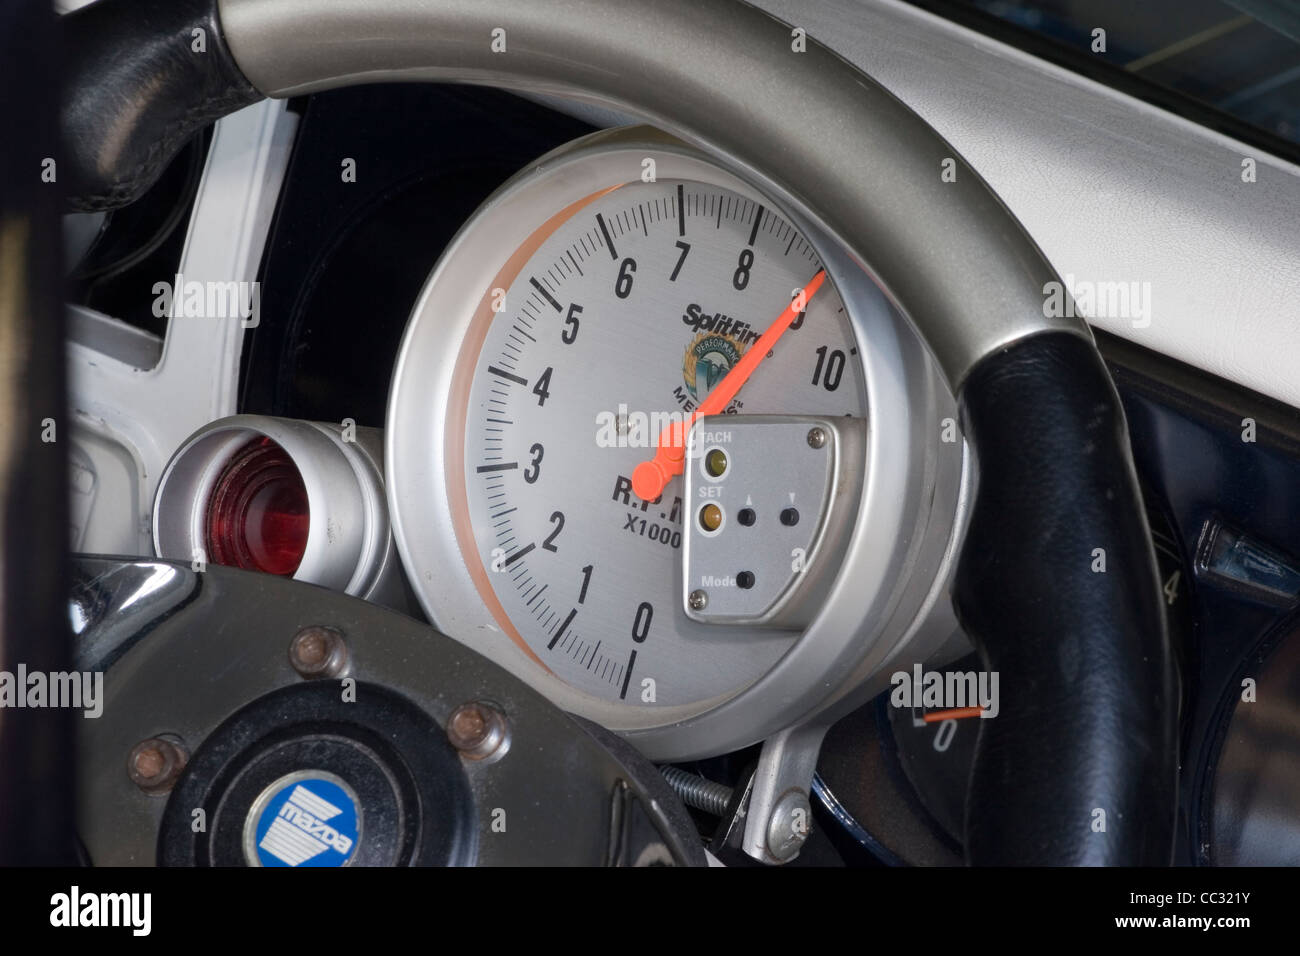 Analogue tachometer tacho rev counter dial gauge on the dash fascia of a custom race car. - Stock Image